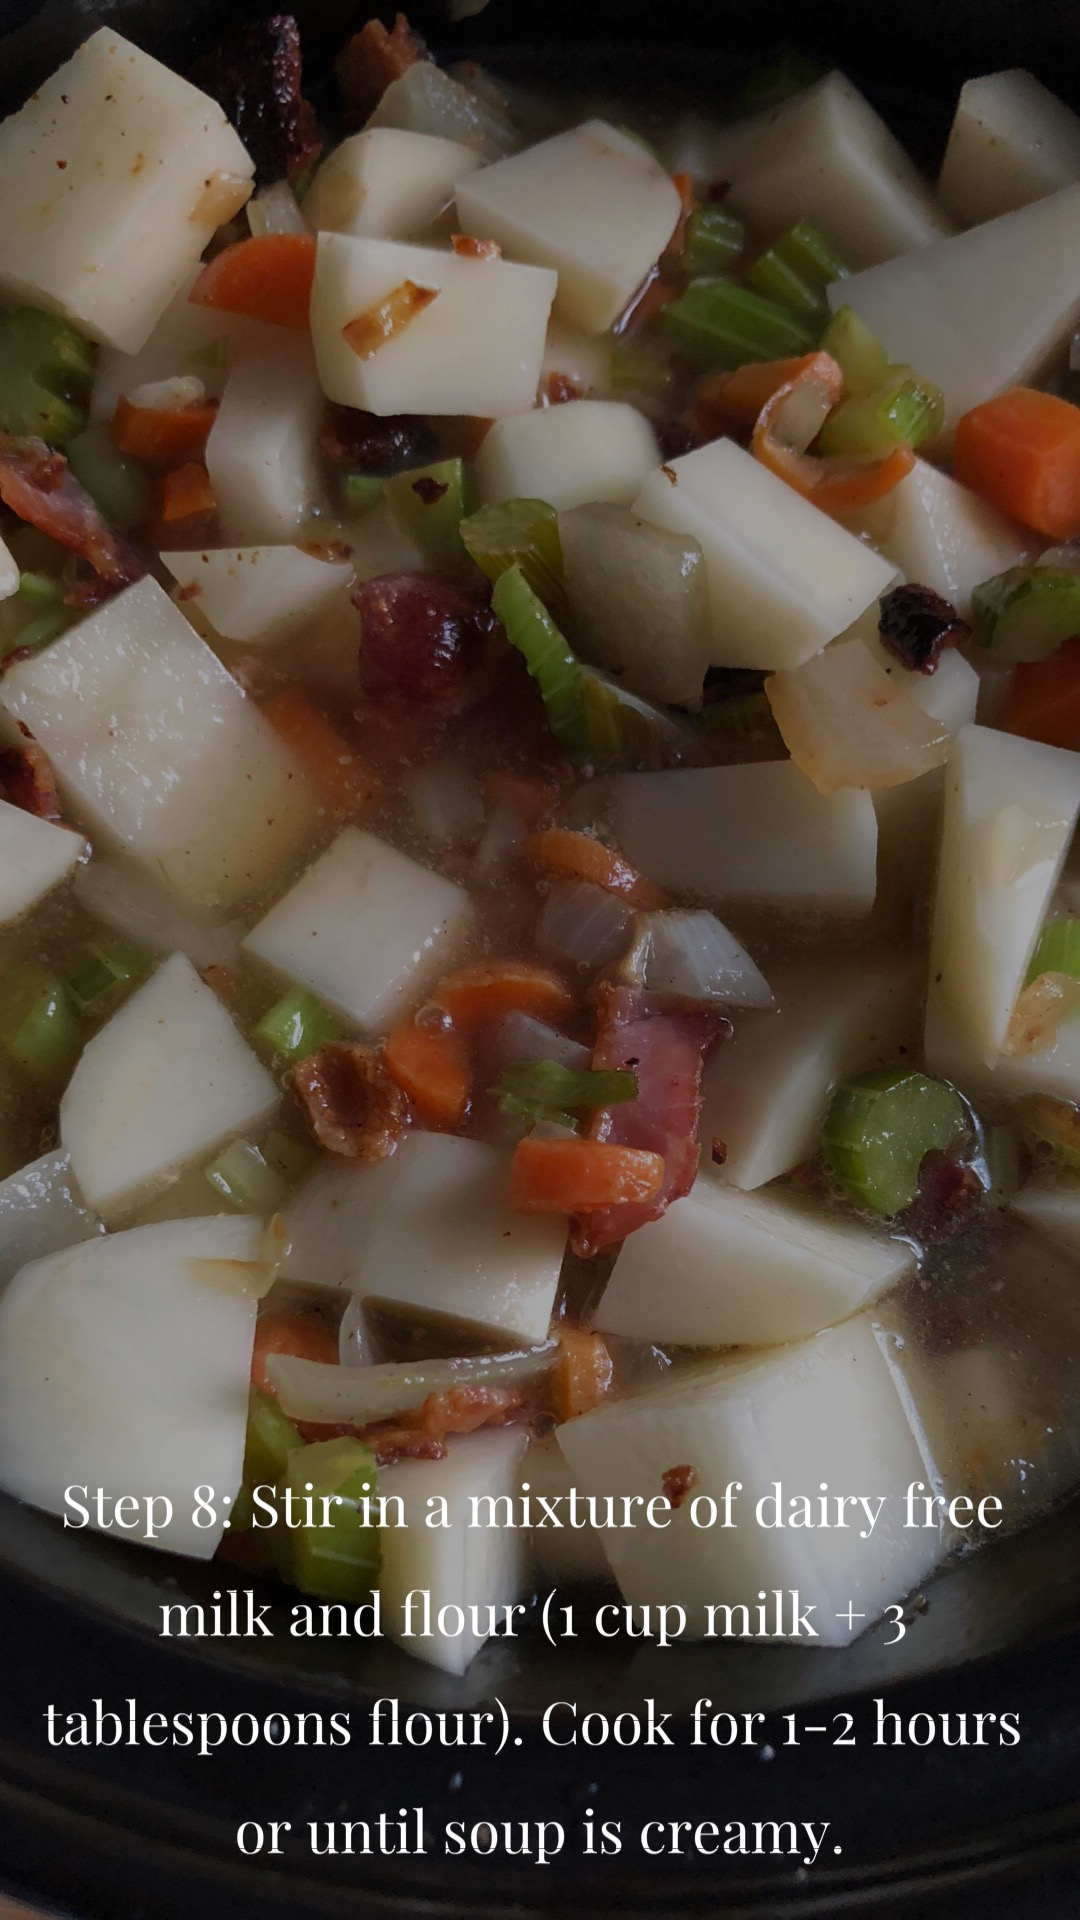 Stir in mixture of dairy free milk and flour - text - over a picture of potatoes, bacon, carrots, celery in broth